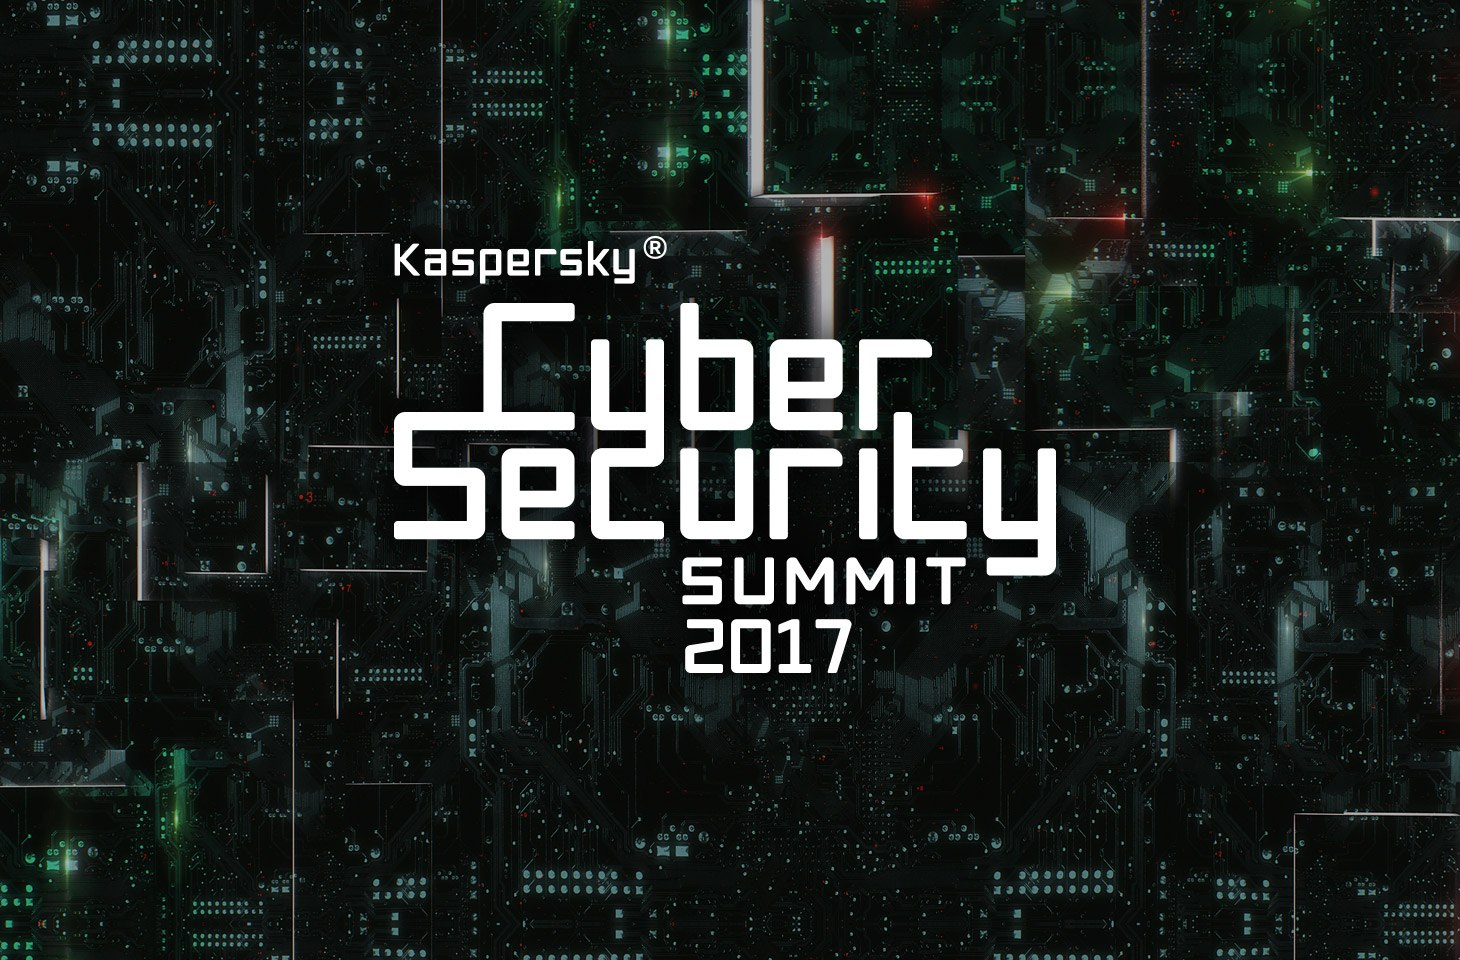 We decided to host our first-ever Kaspersky CyberSecurity Summit online, on September 21, 2017.